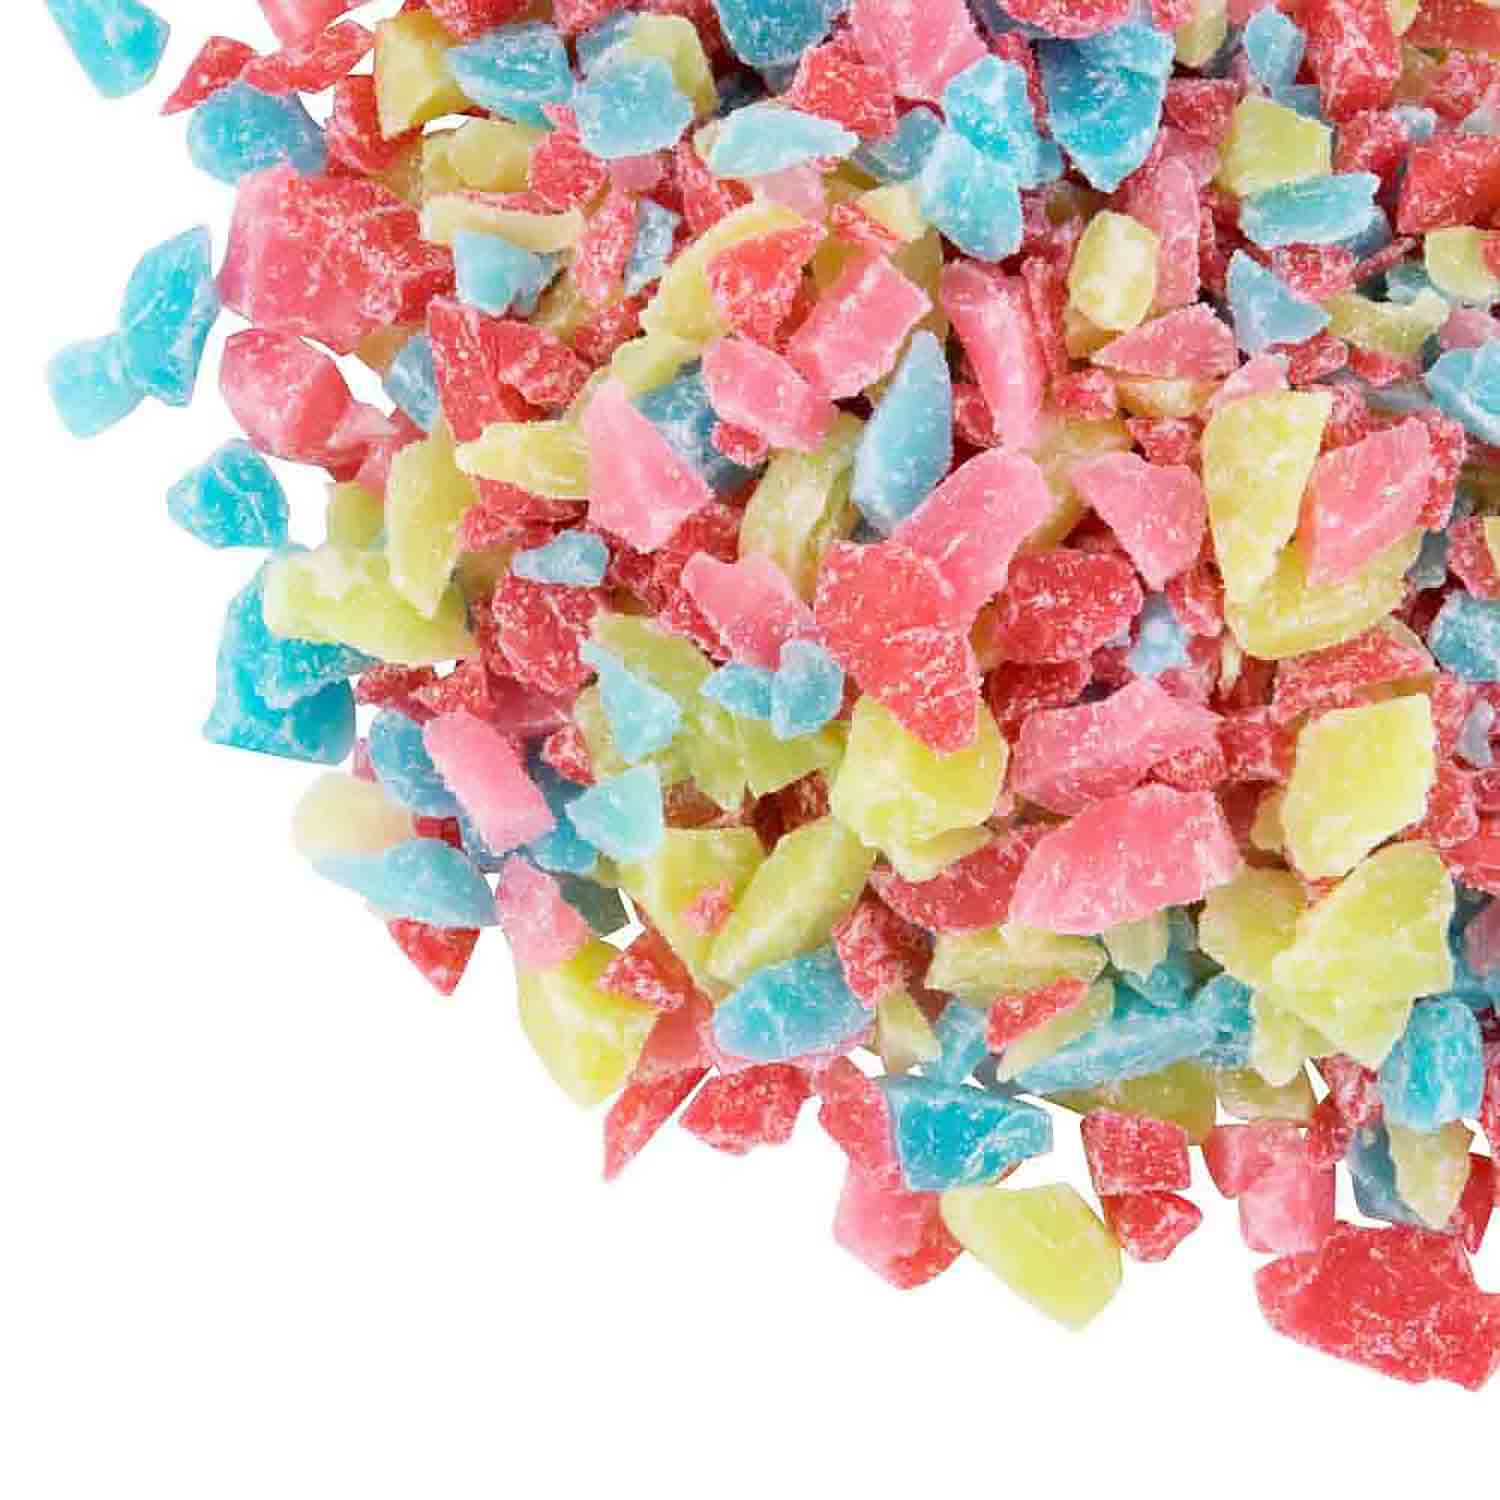 Jolly Rancher Chopped Candy Crunch